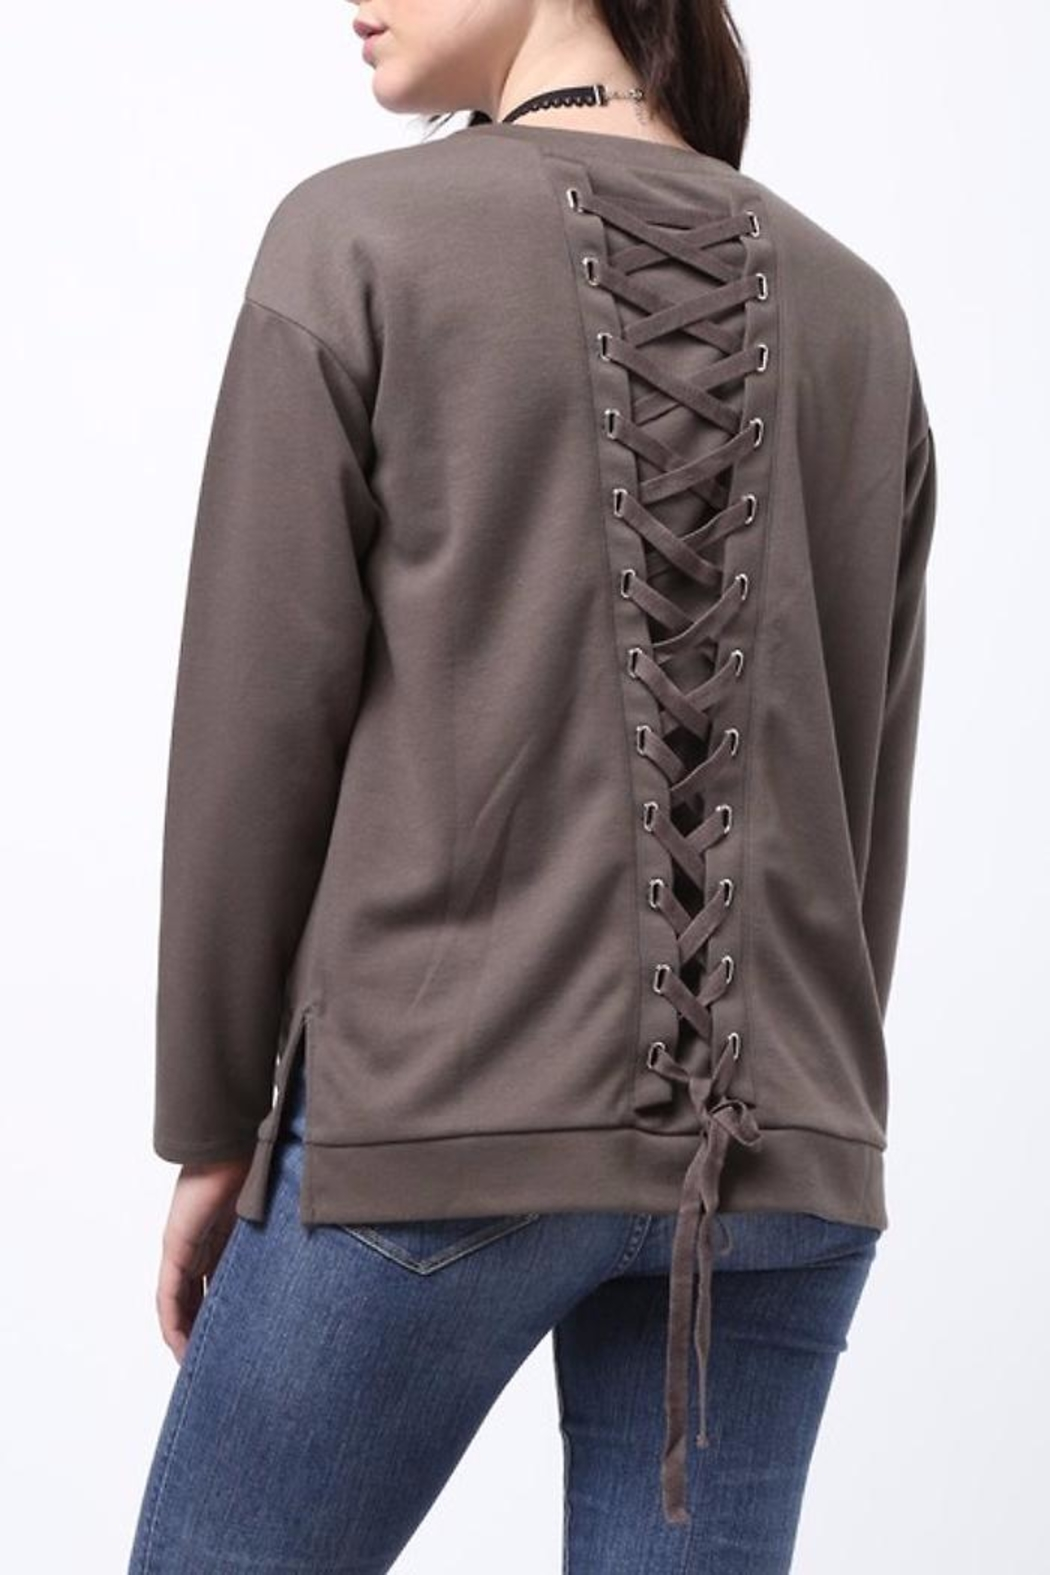 People Outfitter Aednat Sweatshirt - Main Image